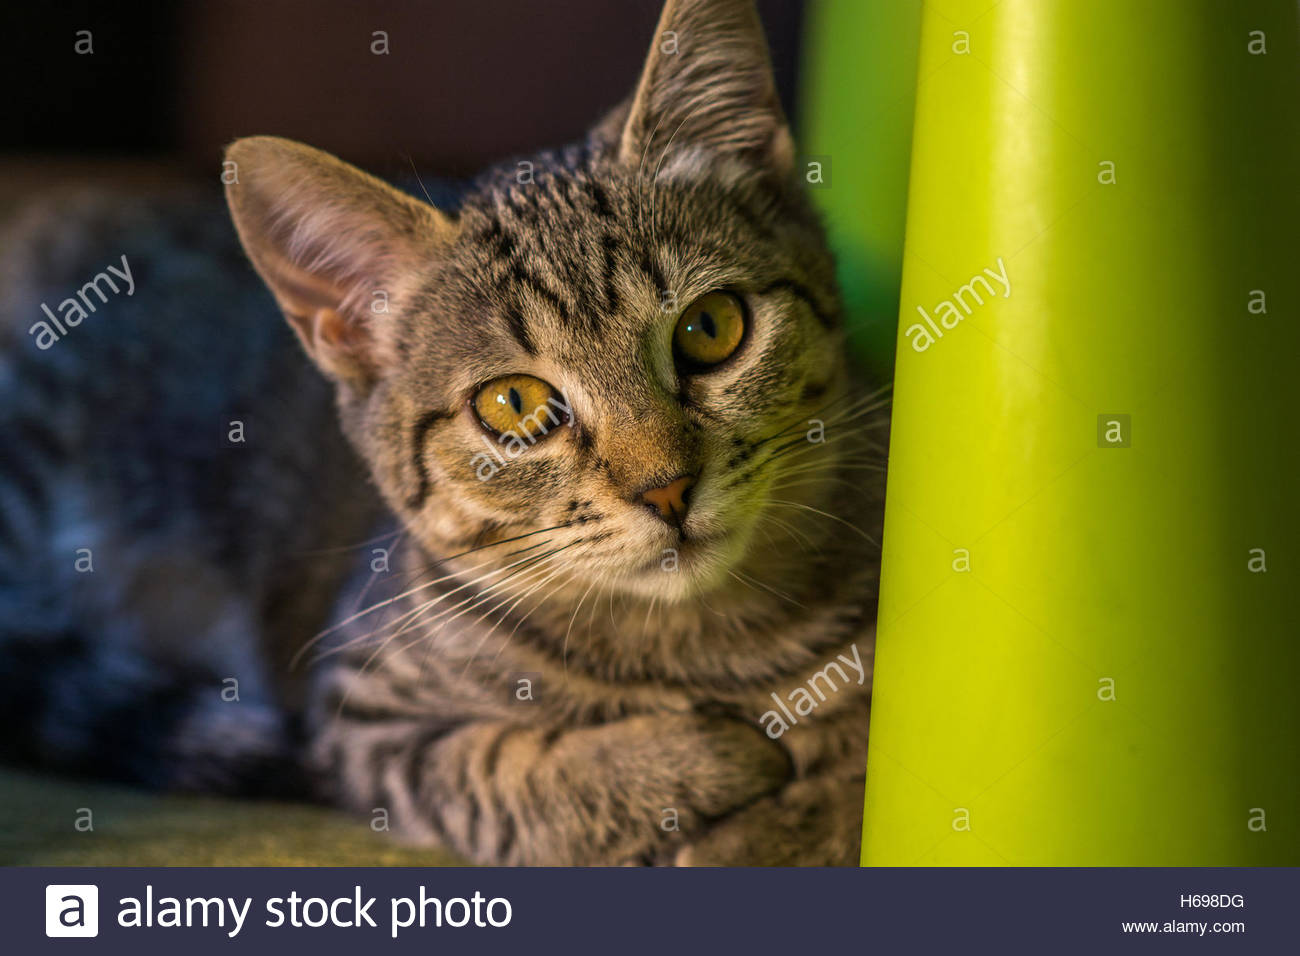 Gray common cat staring from a plastic chair, this particular cat was looking at two children playing in their room. - Stock Image